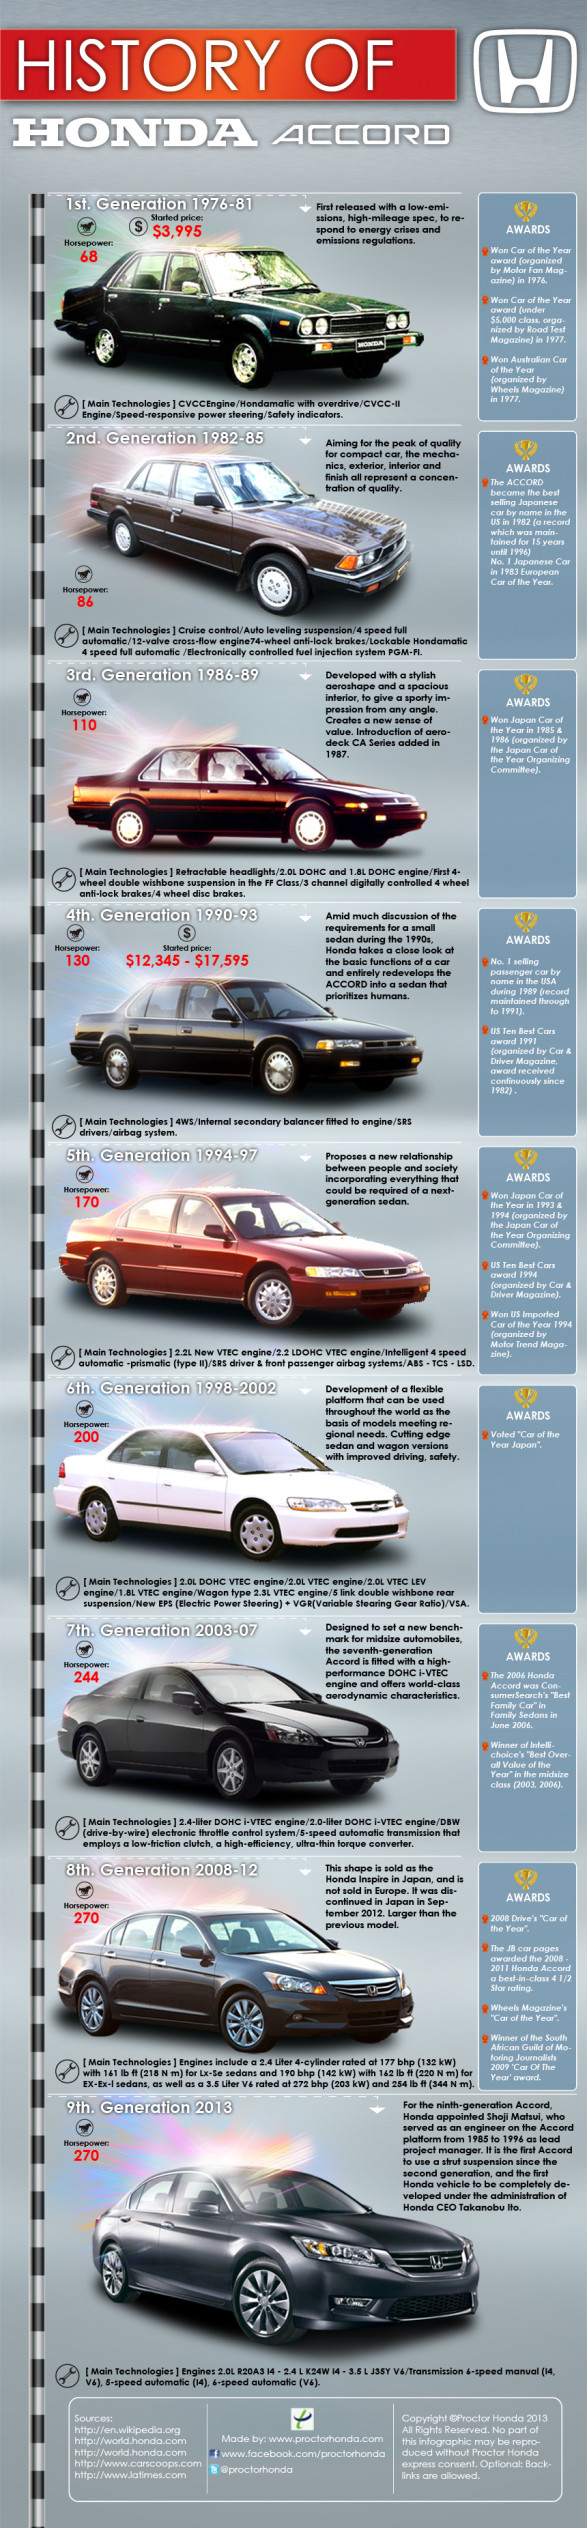 History of Honda Accord